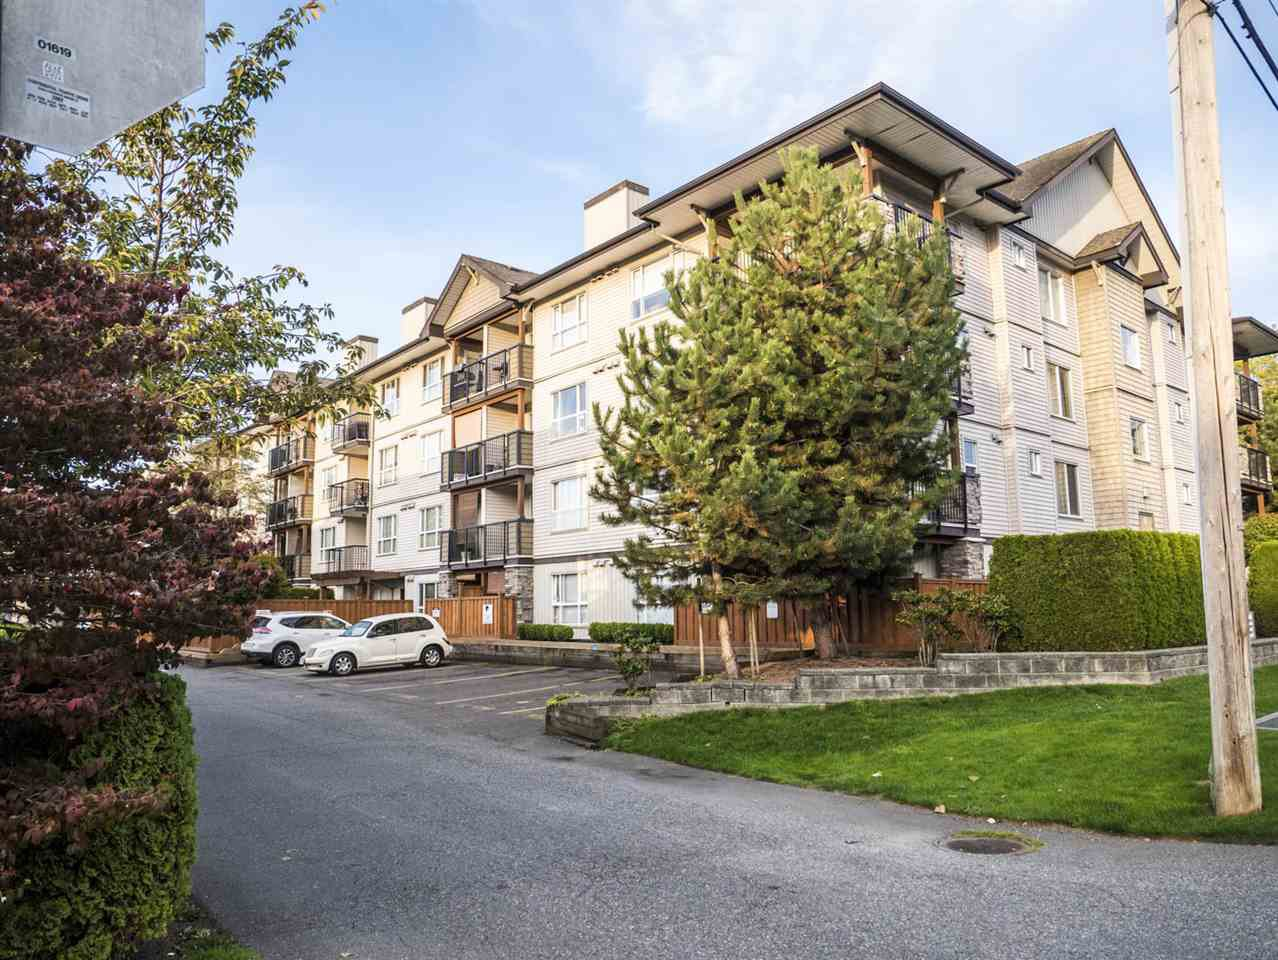 """Main Photo: 109 5465 203 Street in Langley: Langley City Condo for sale in """"Station 54"""" : MLS®# R2212720"""